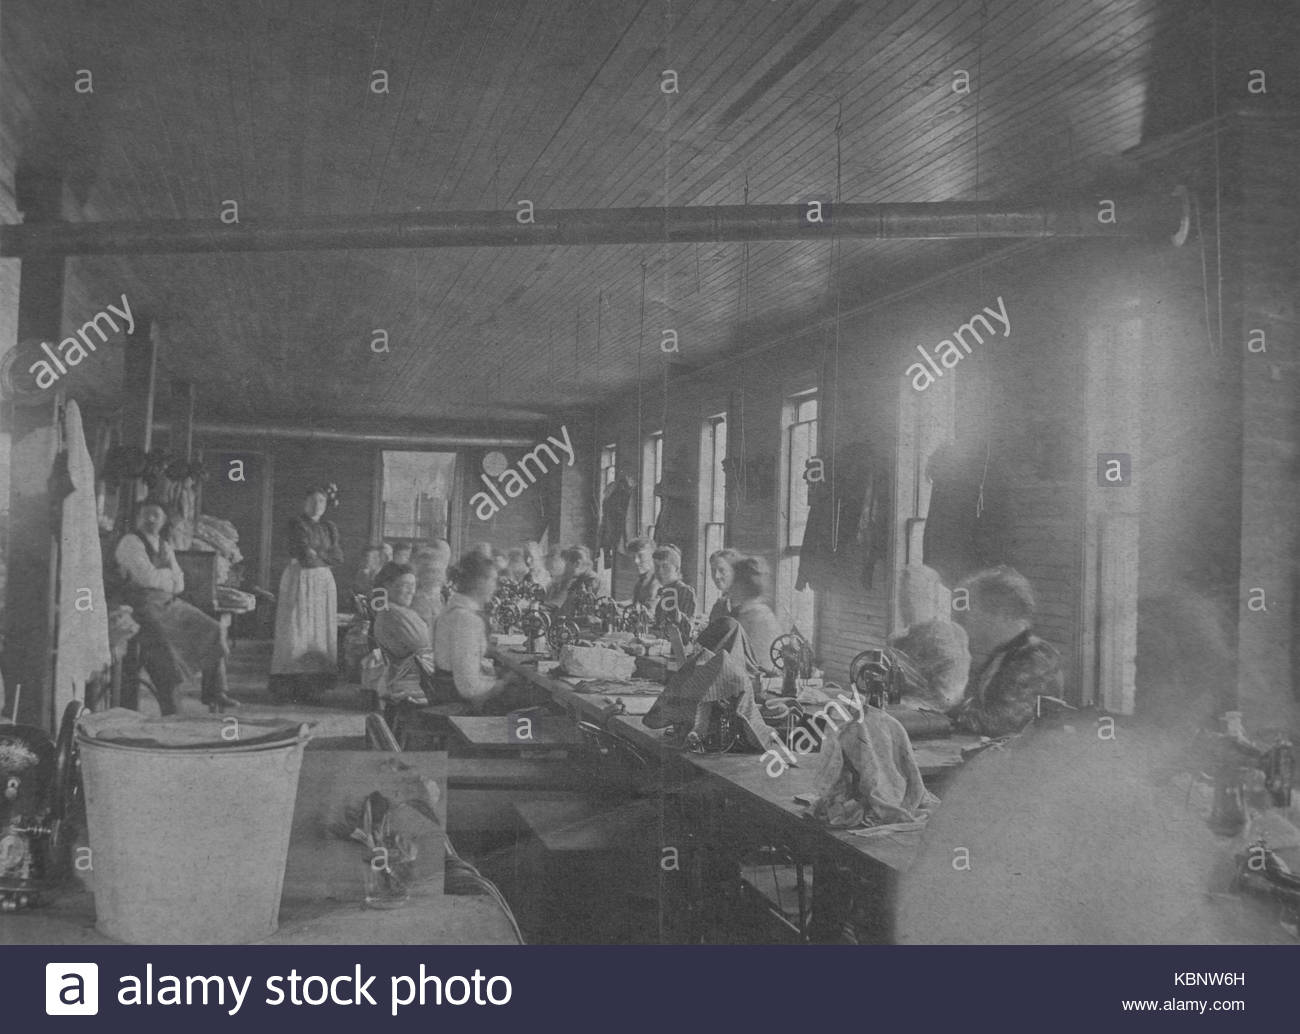 American archive monochrome black and white version of a Cyanotype photograph of employees or workers in the Sewing Stock Photo